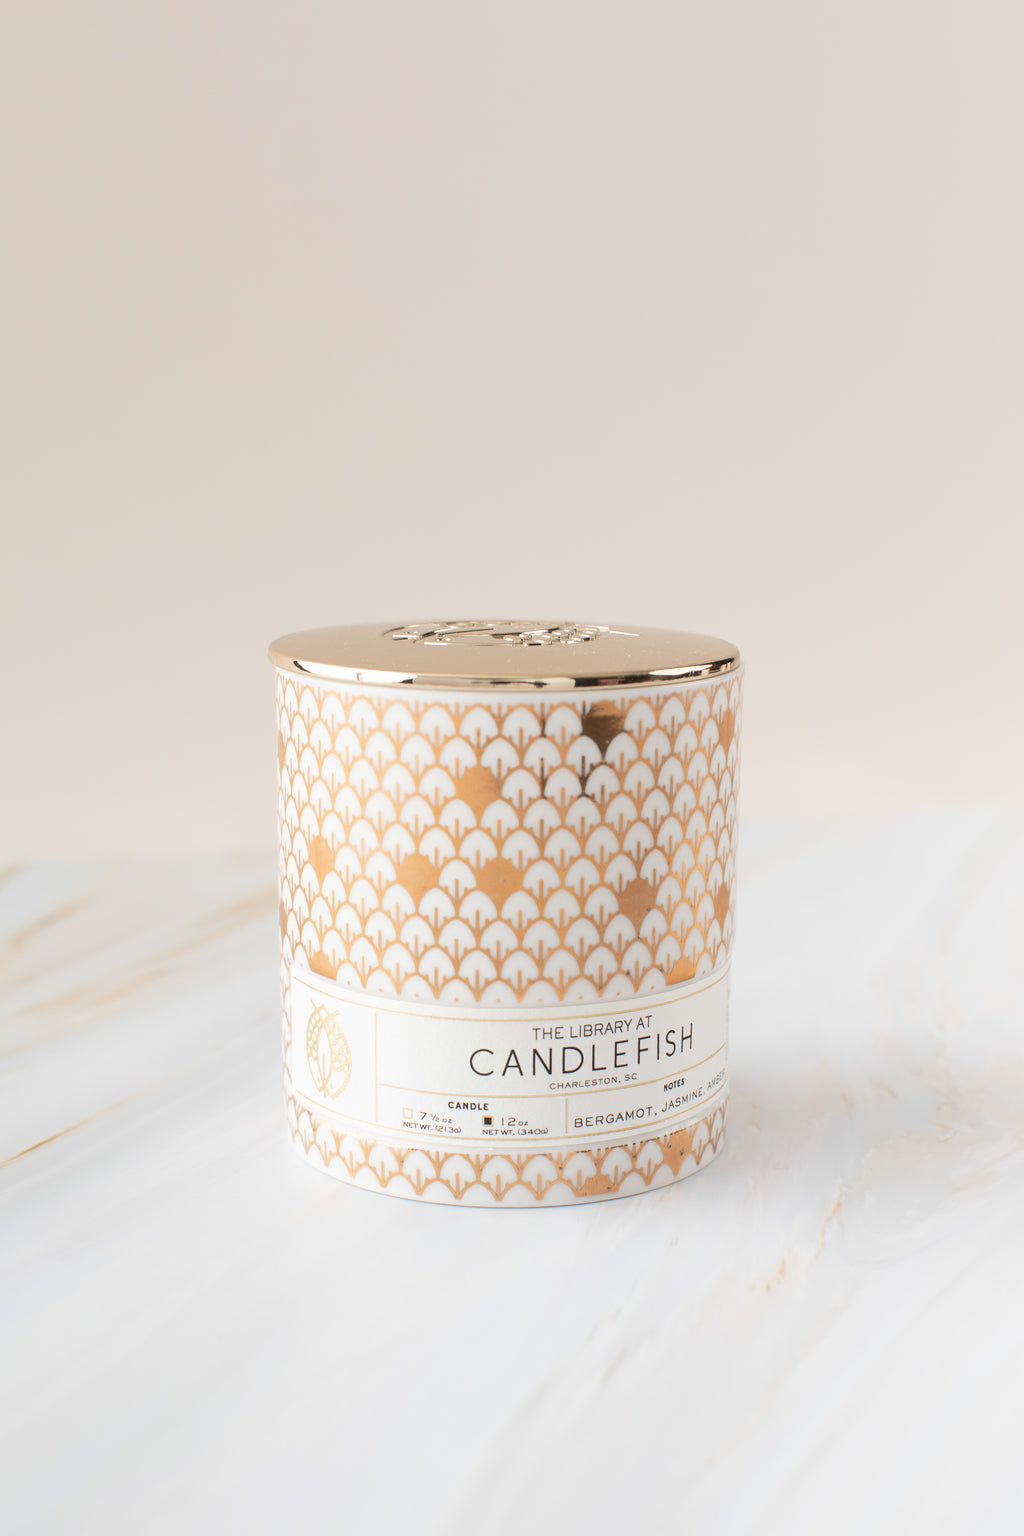 Candlefish No. 30 Gold Scales Ceramic Candle